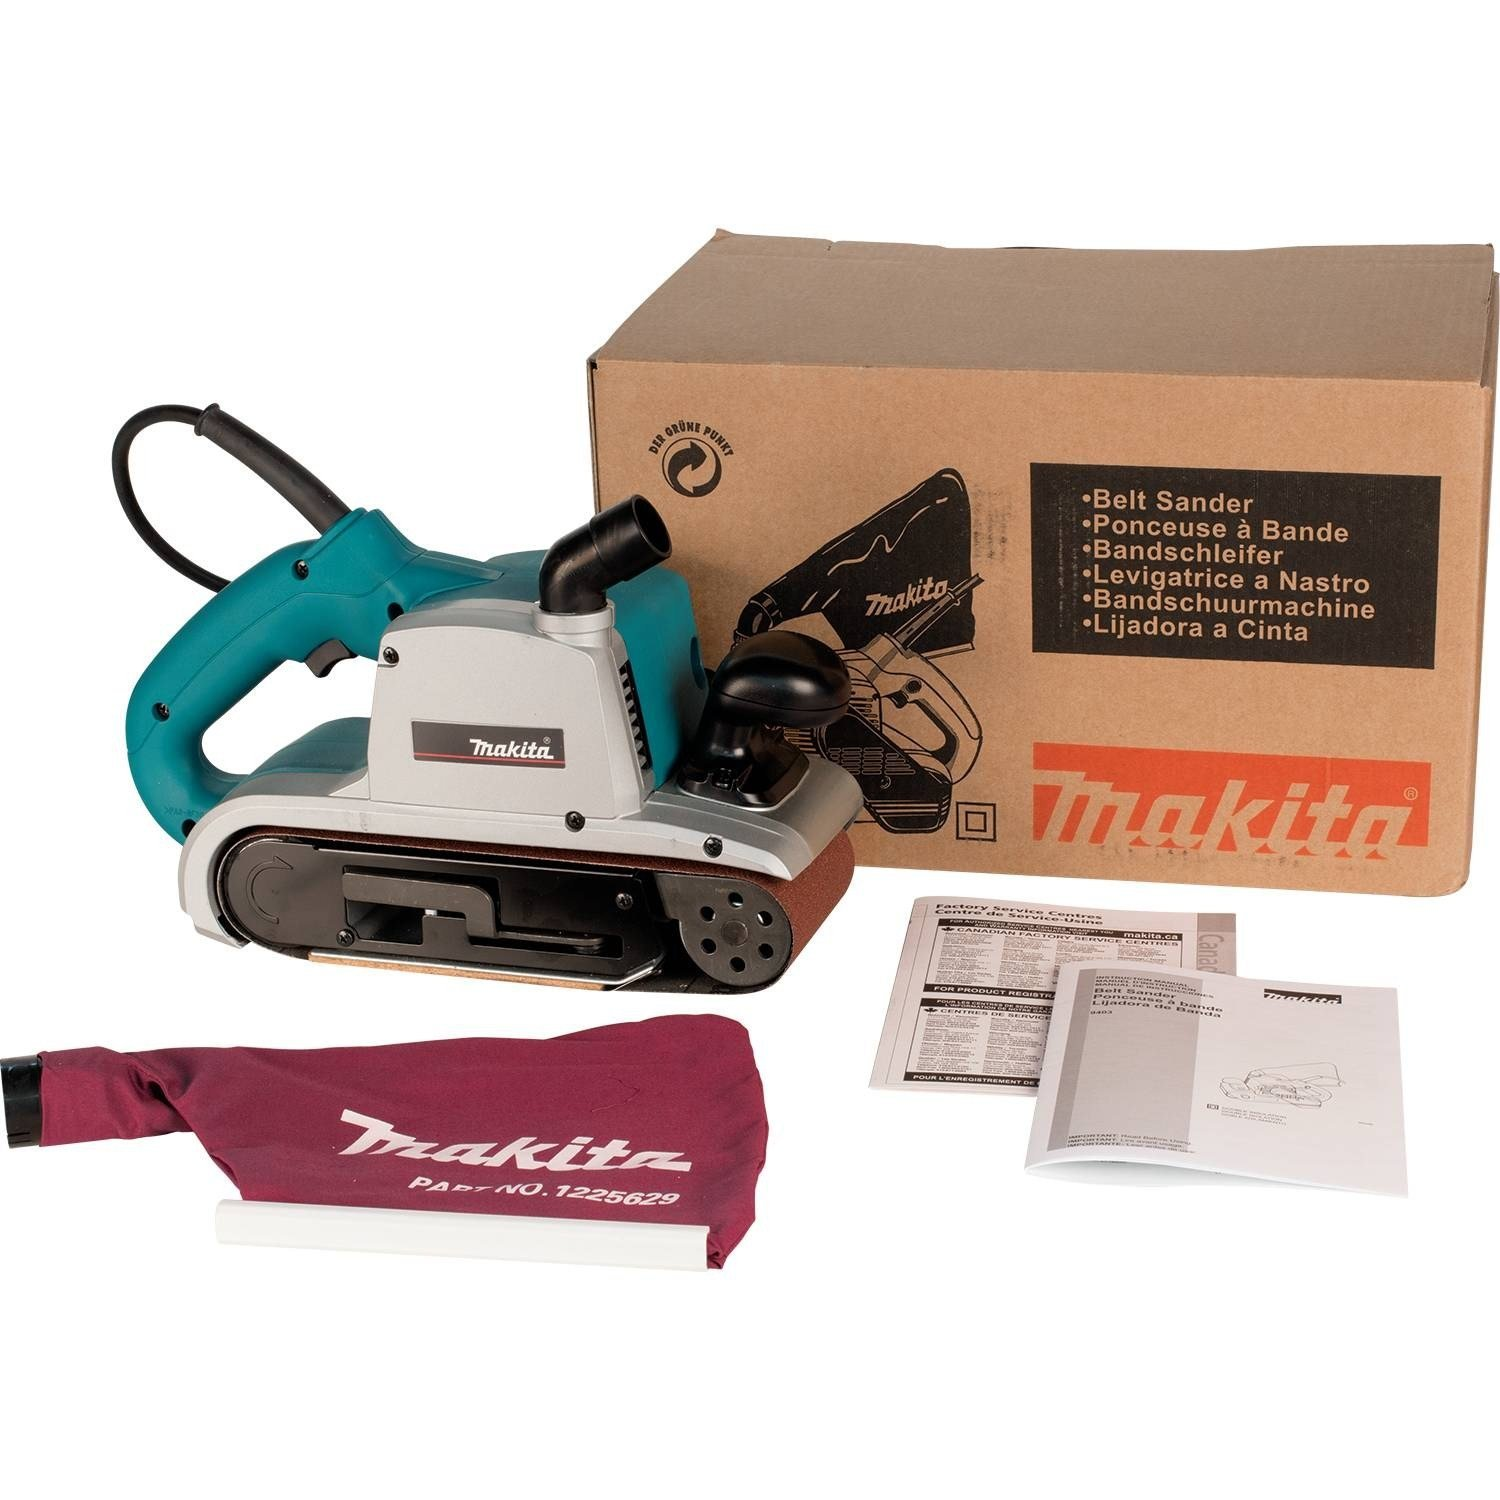 Makita 9403 featured image 6